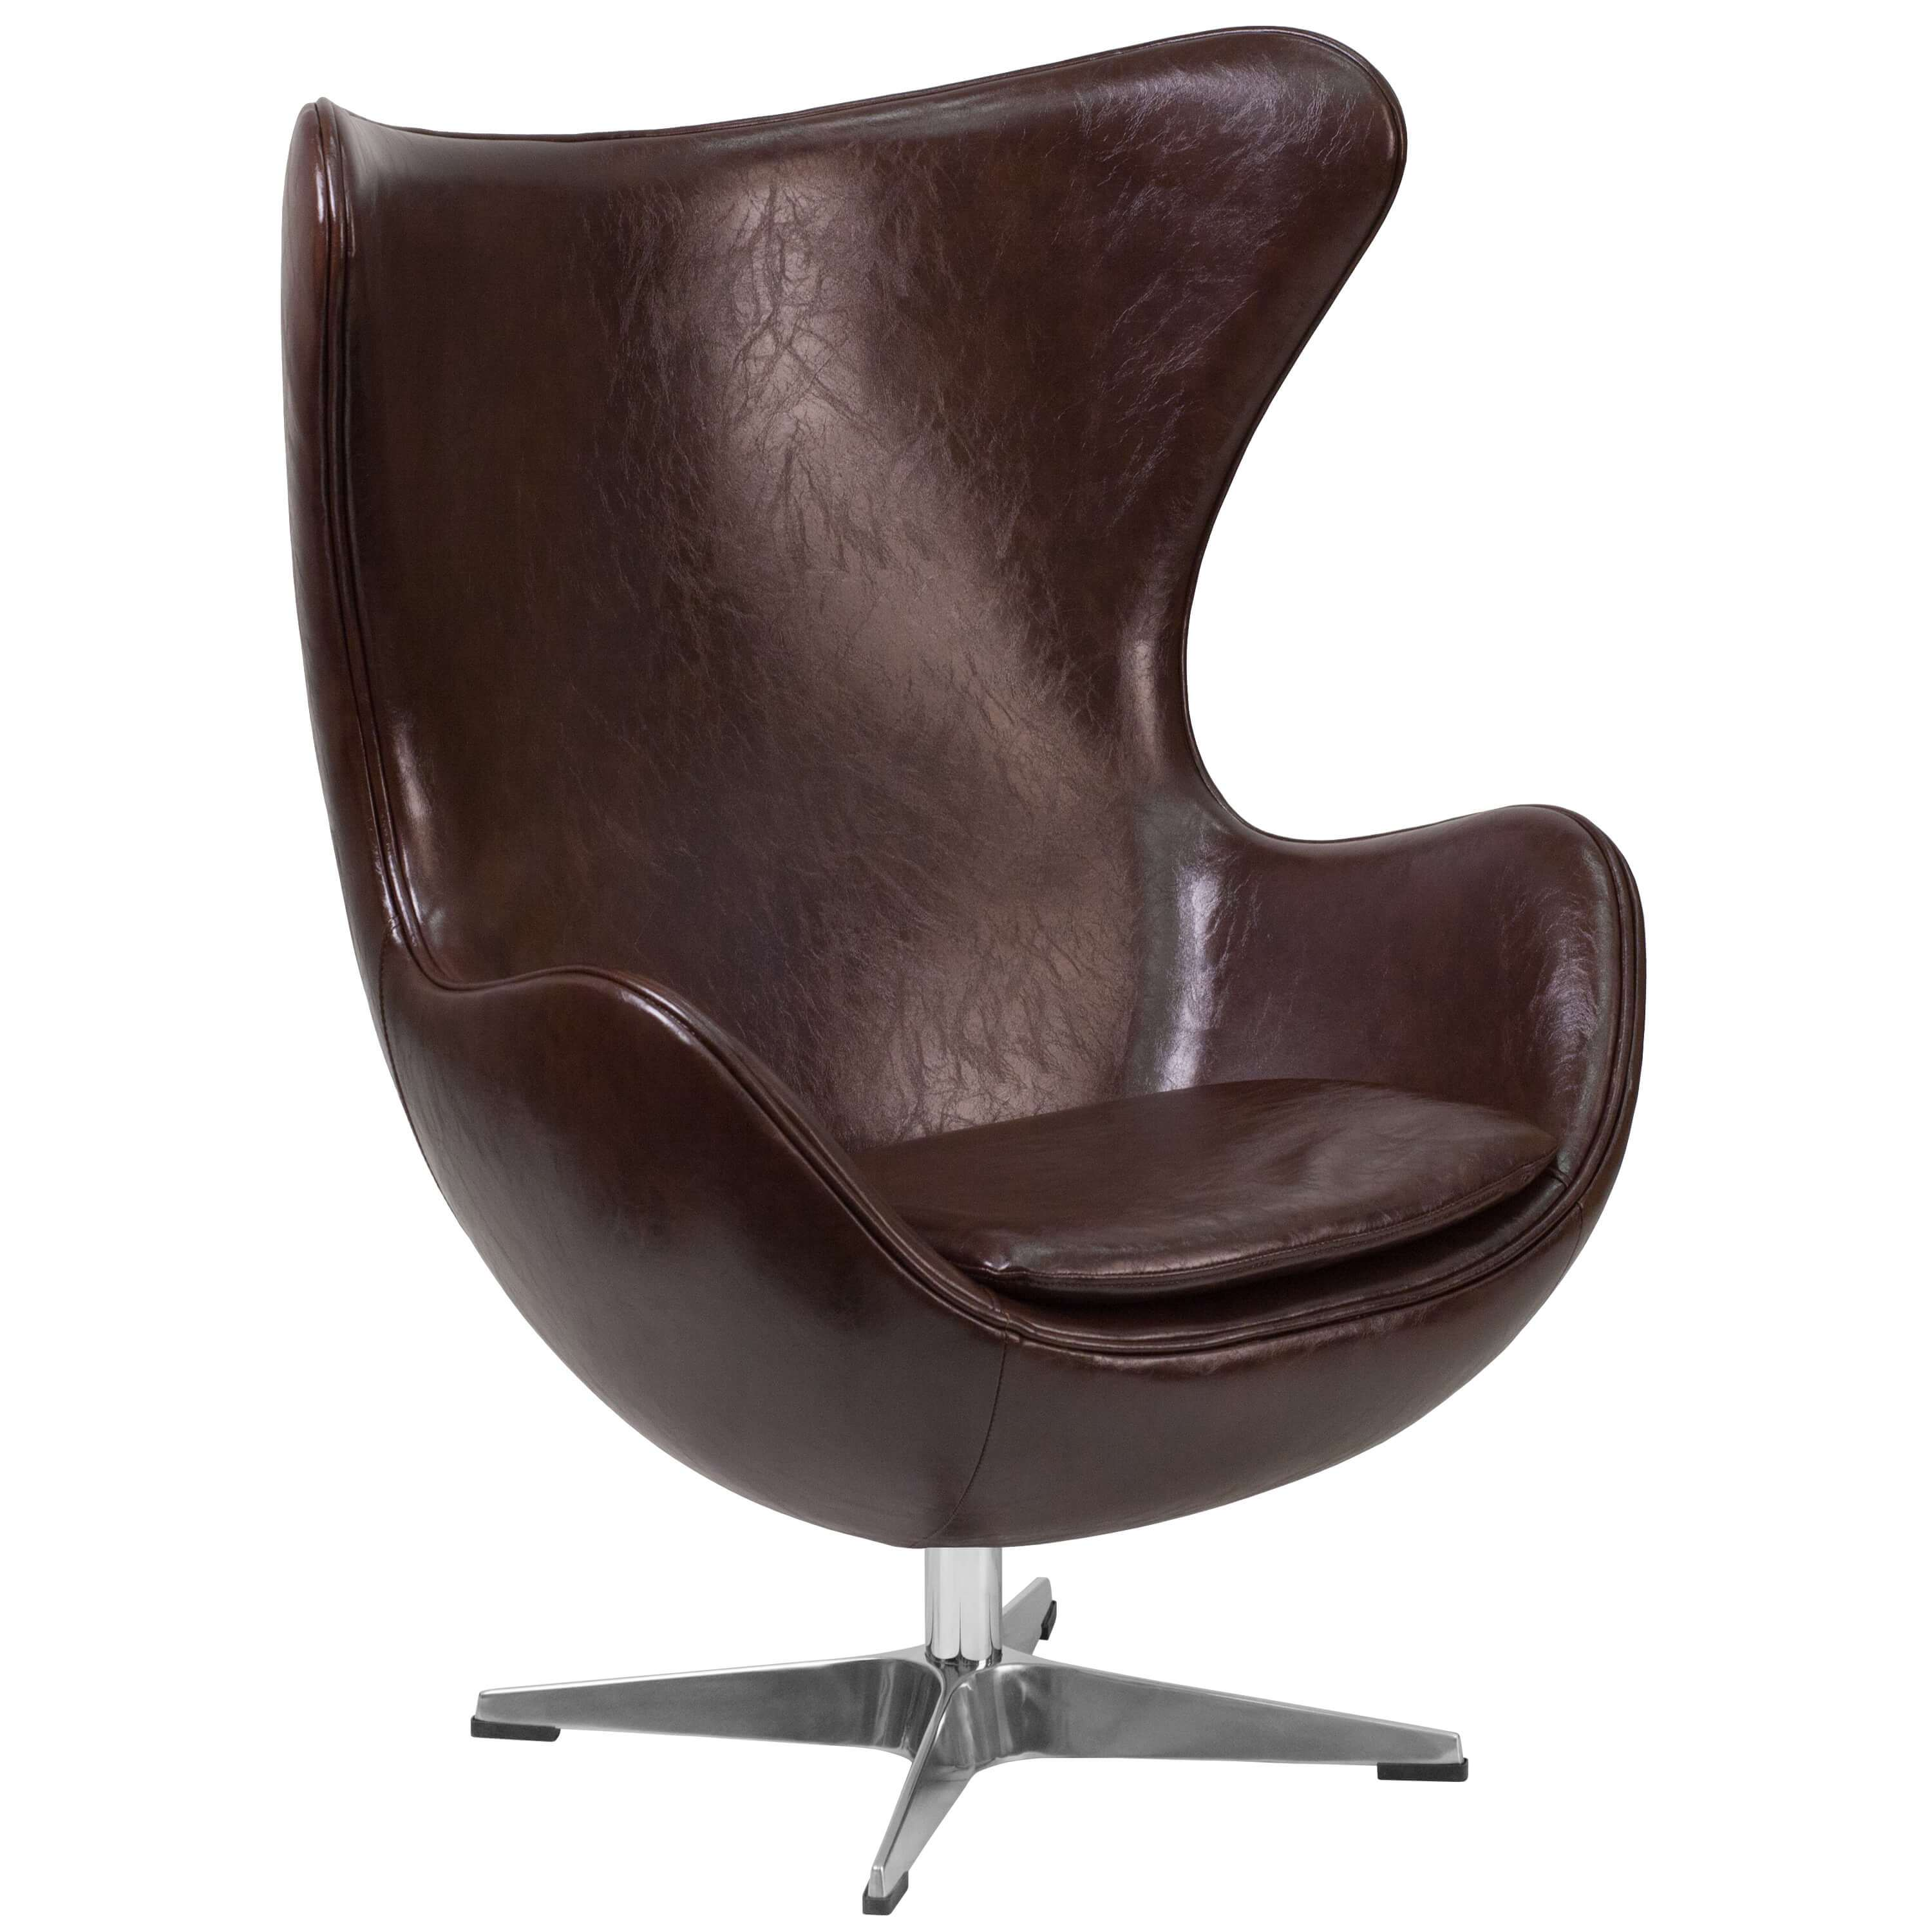 Office lounge chairs CUB ZB 11 GG ALF